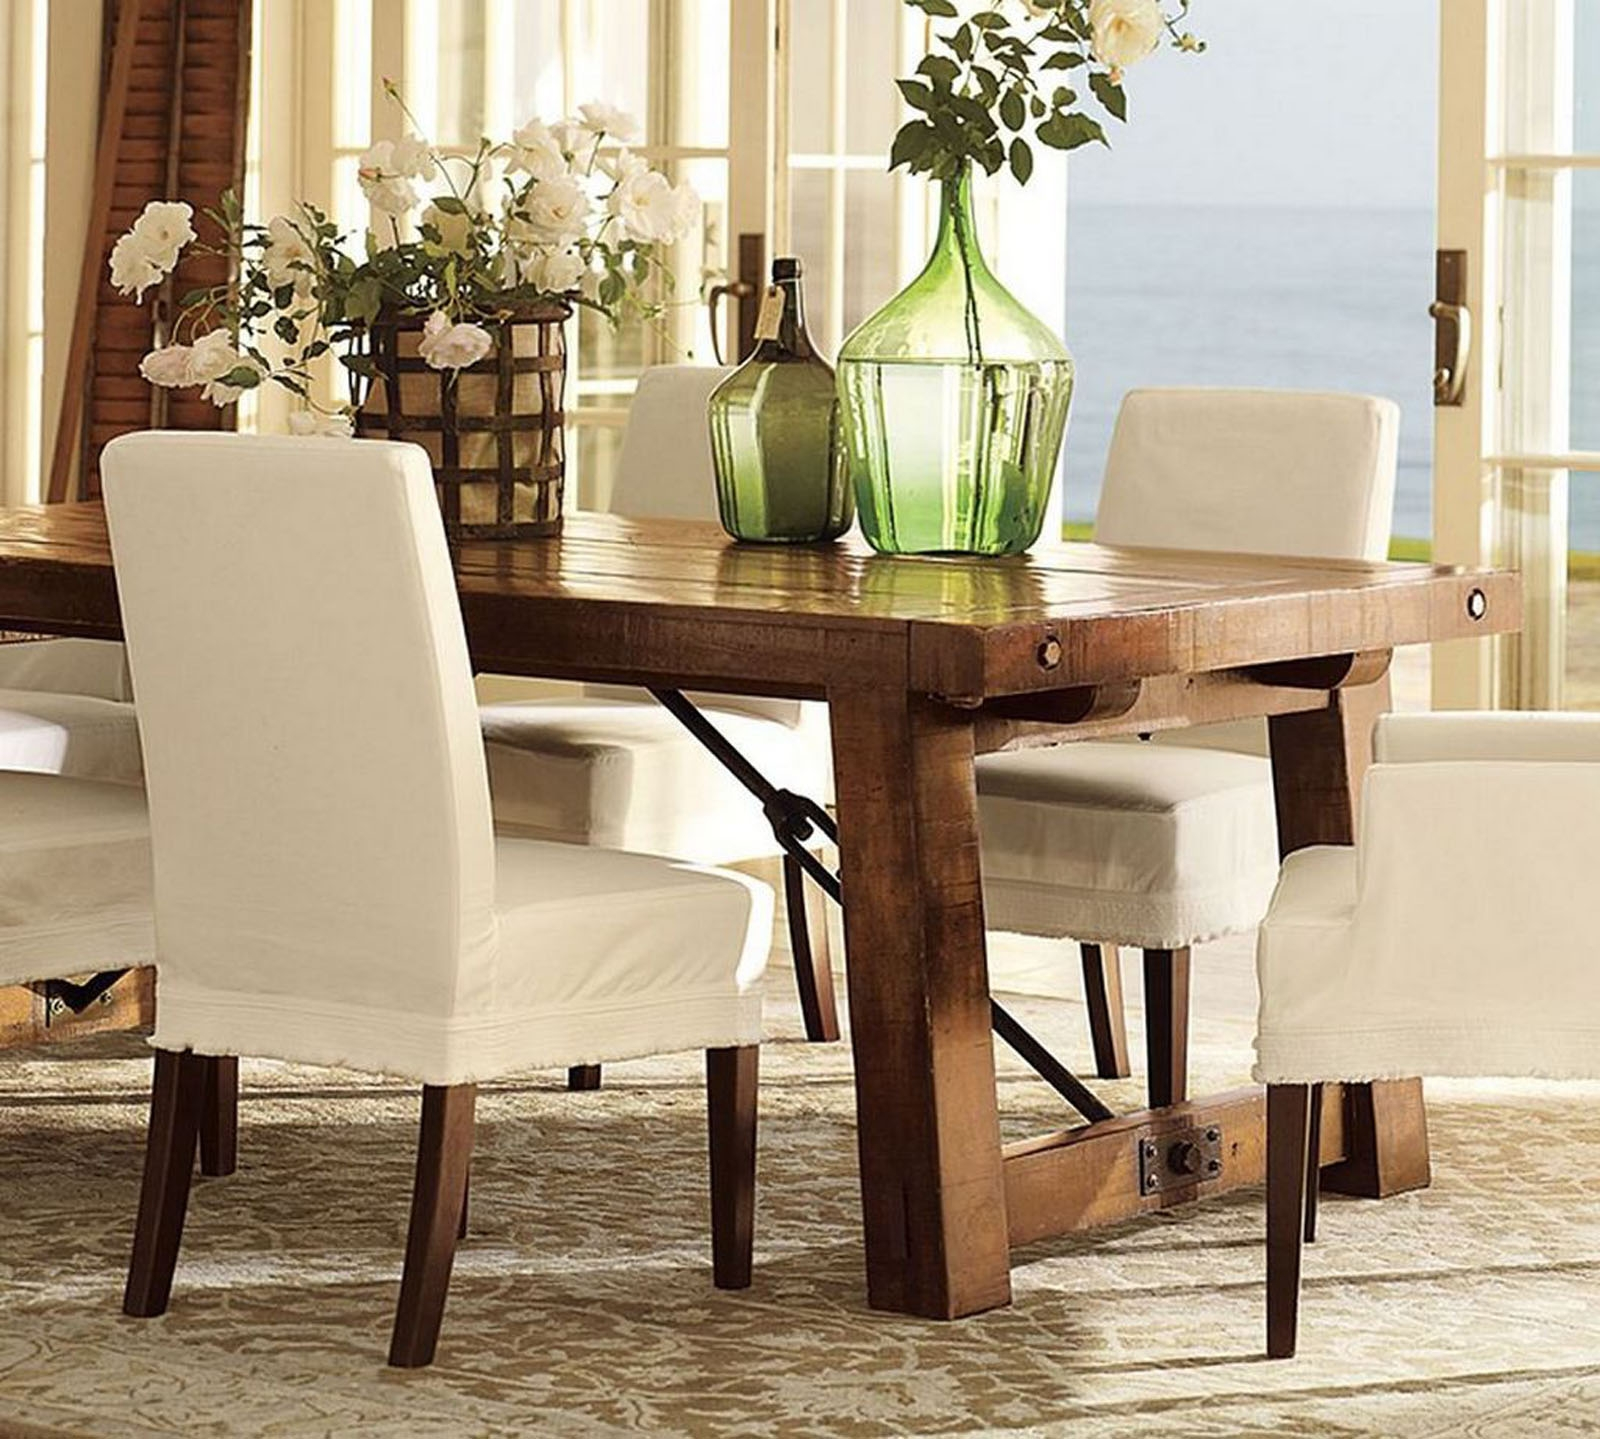 Permalink to Kitchen Table Decorating Ideas Pictures